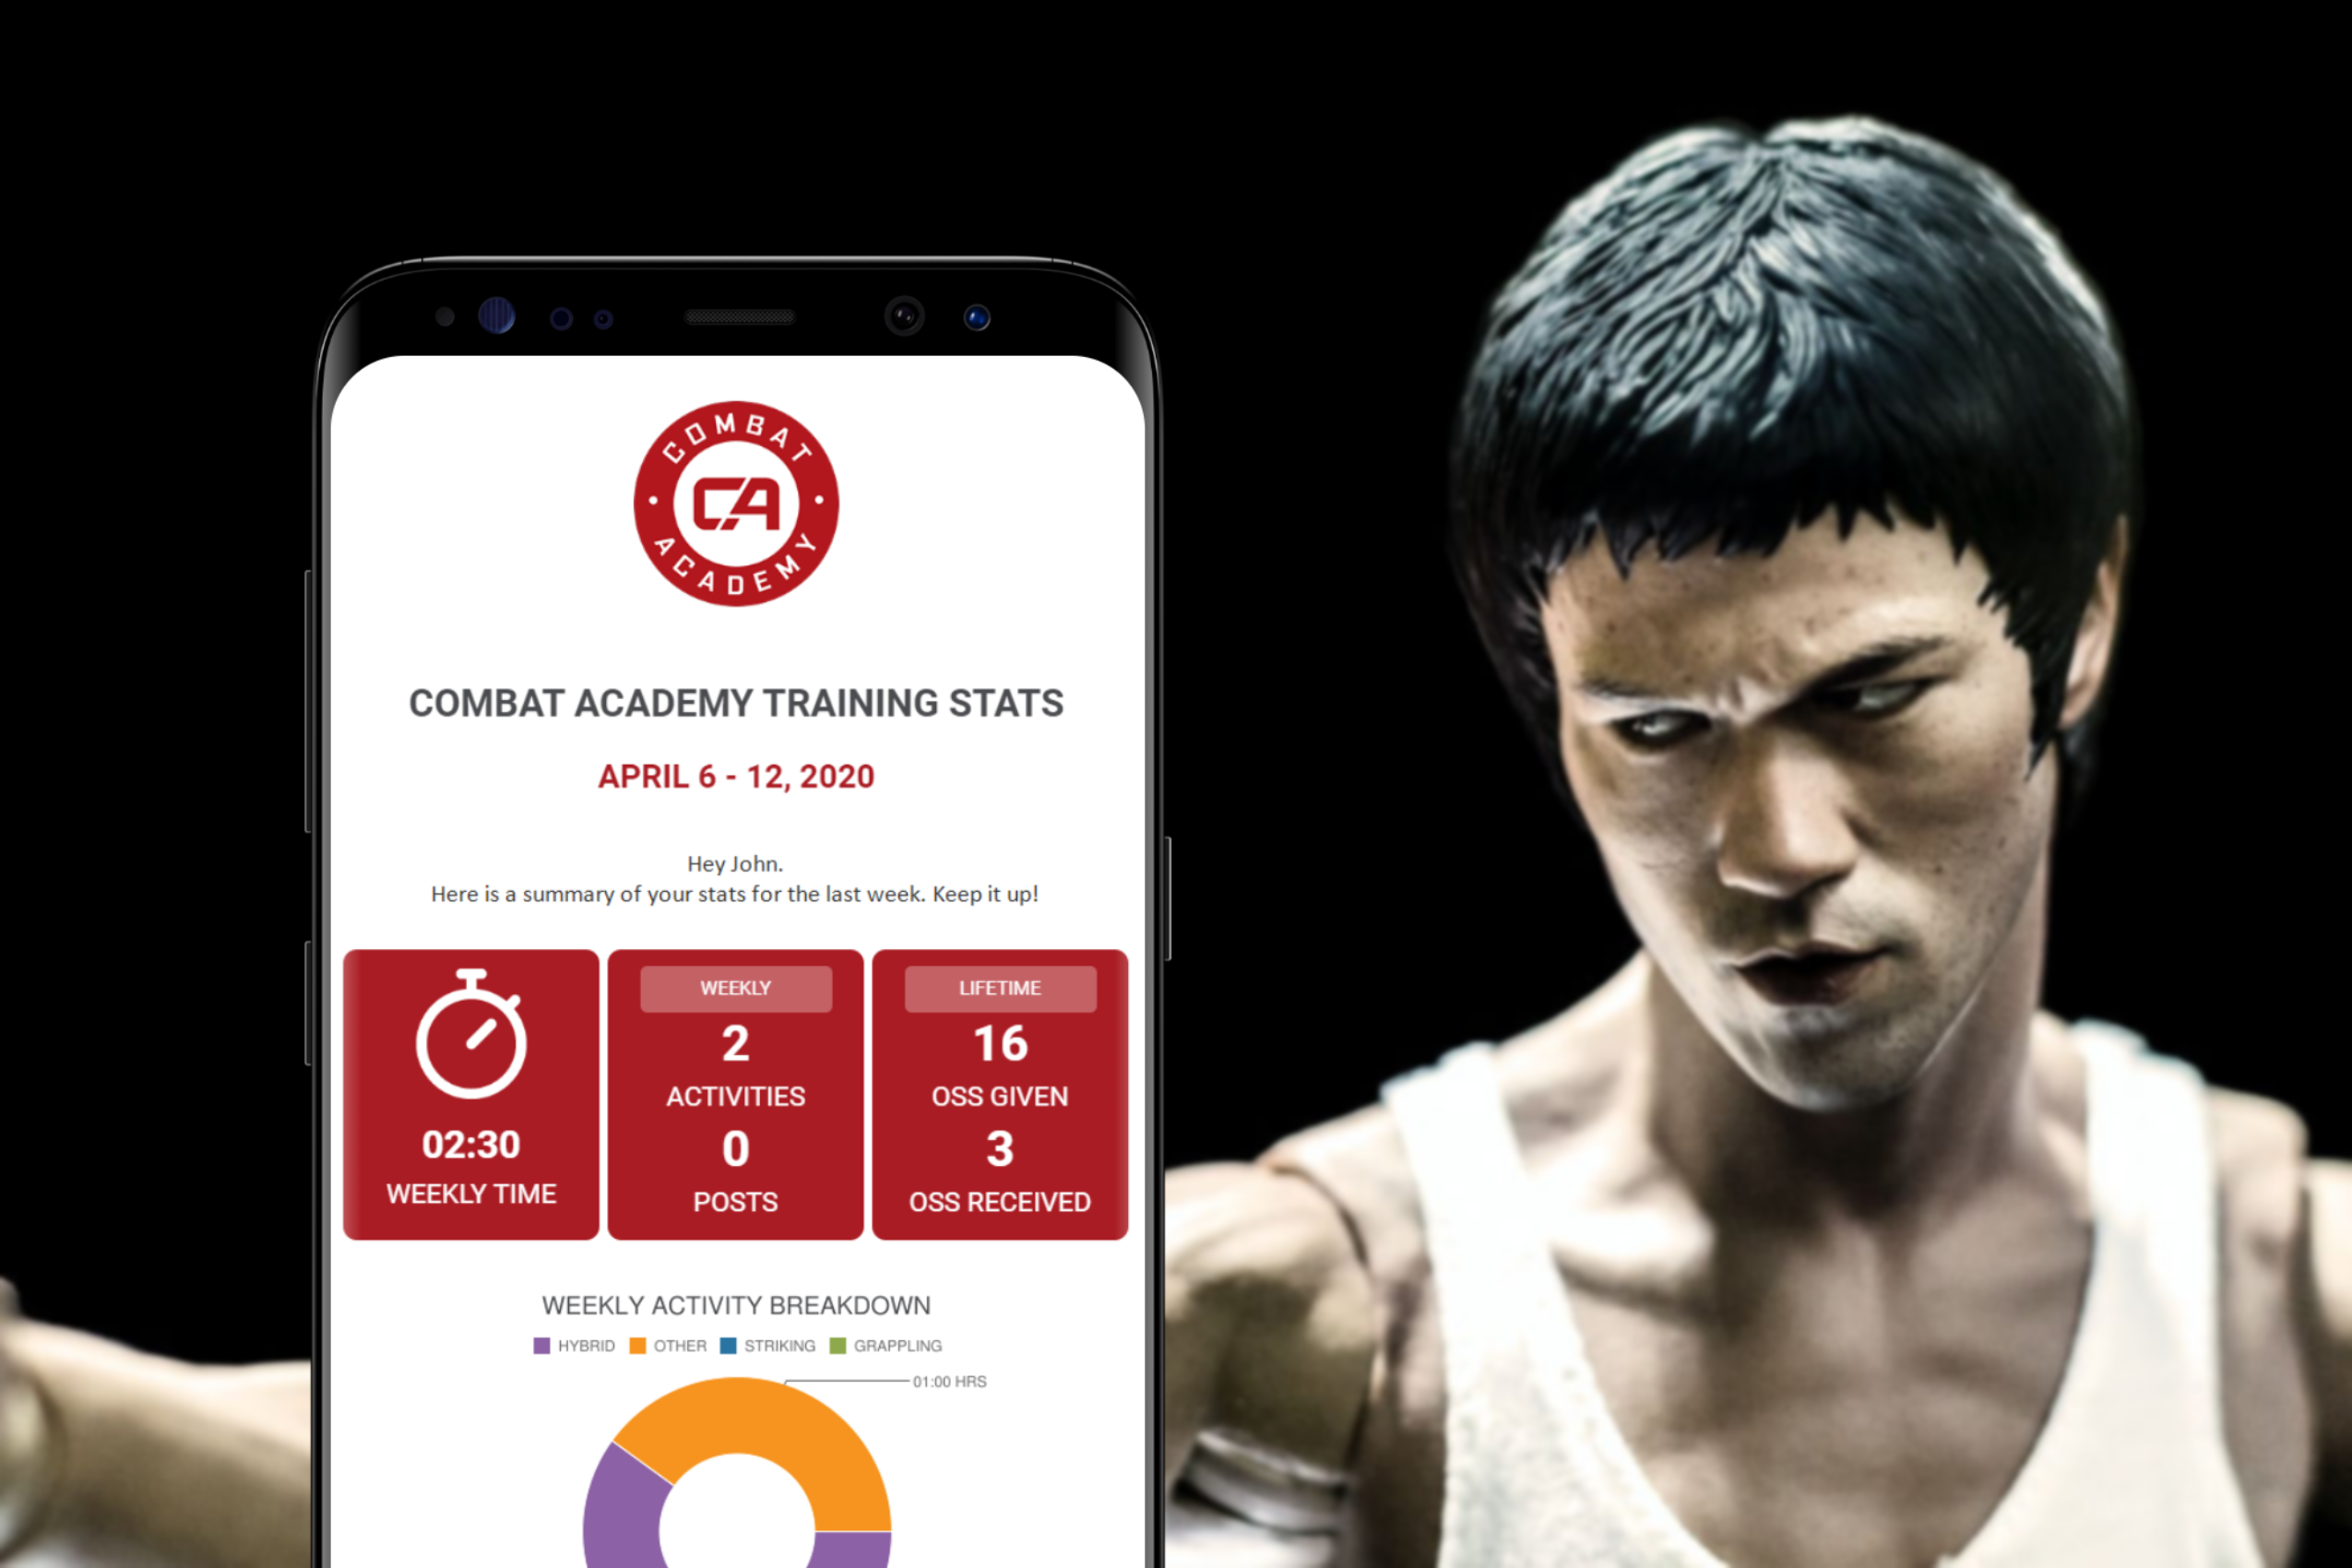 Weekly email stats from Combat Academy